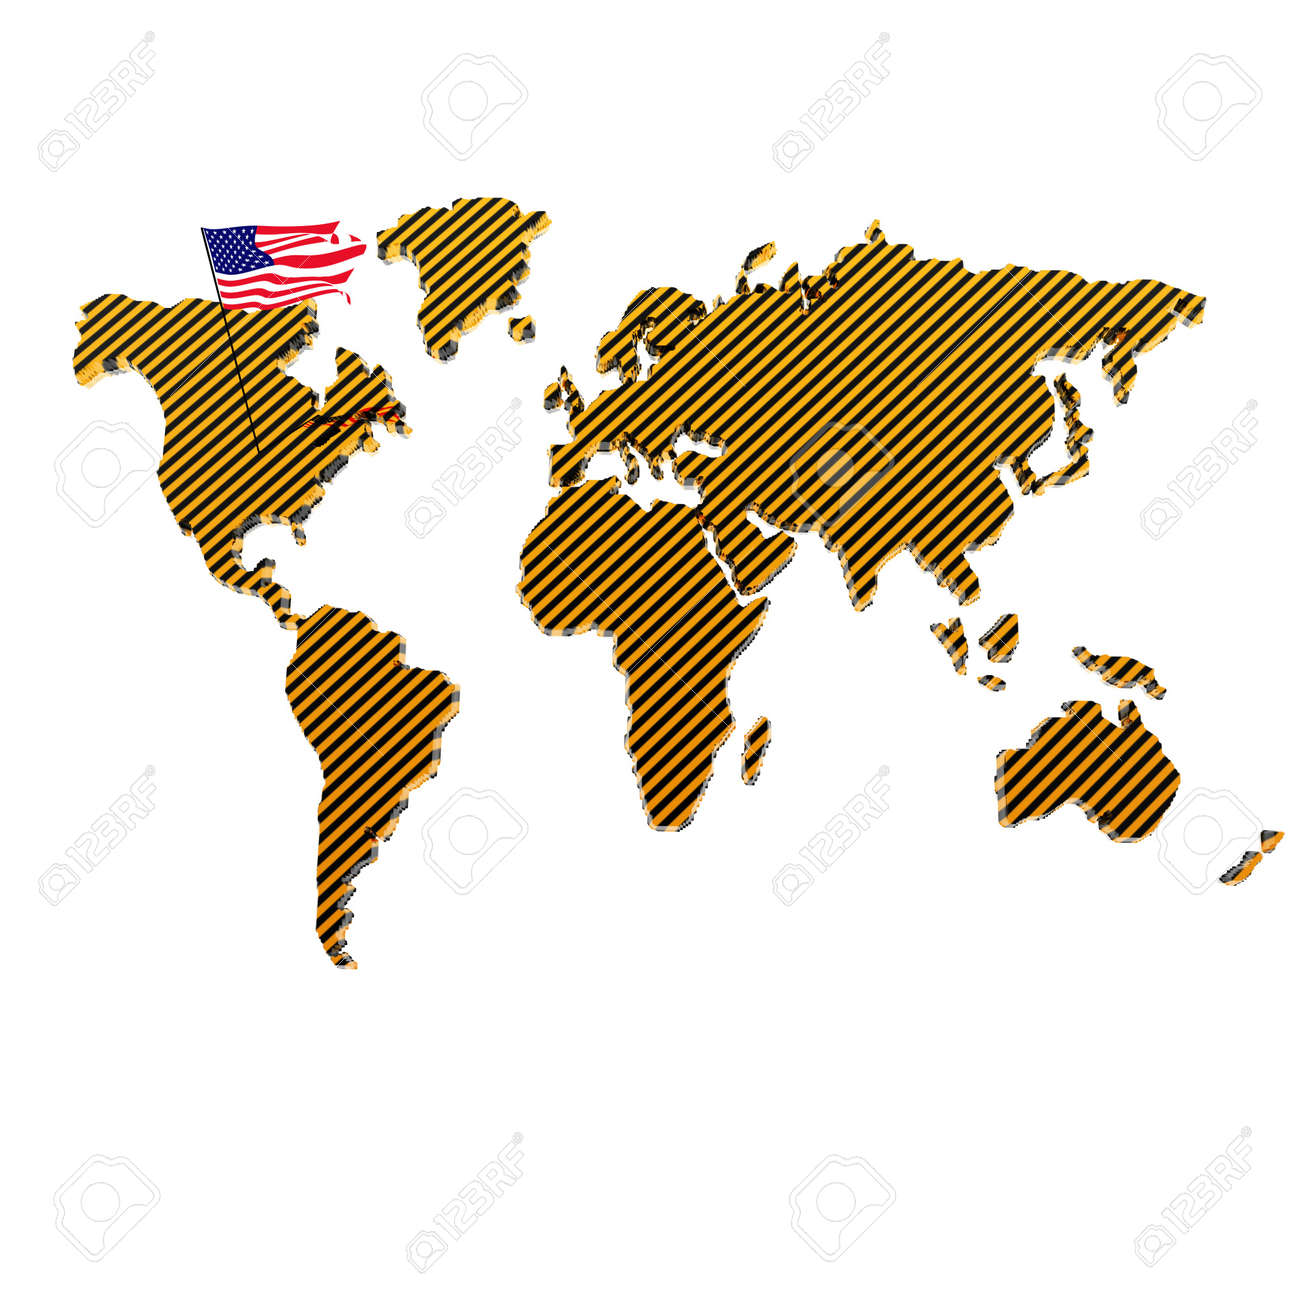 us flag on the world map isolated on a white background Stock Photo - 4135570